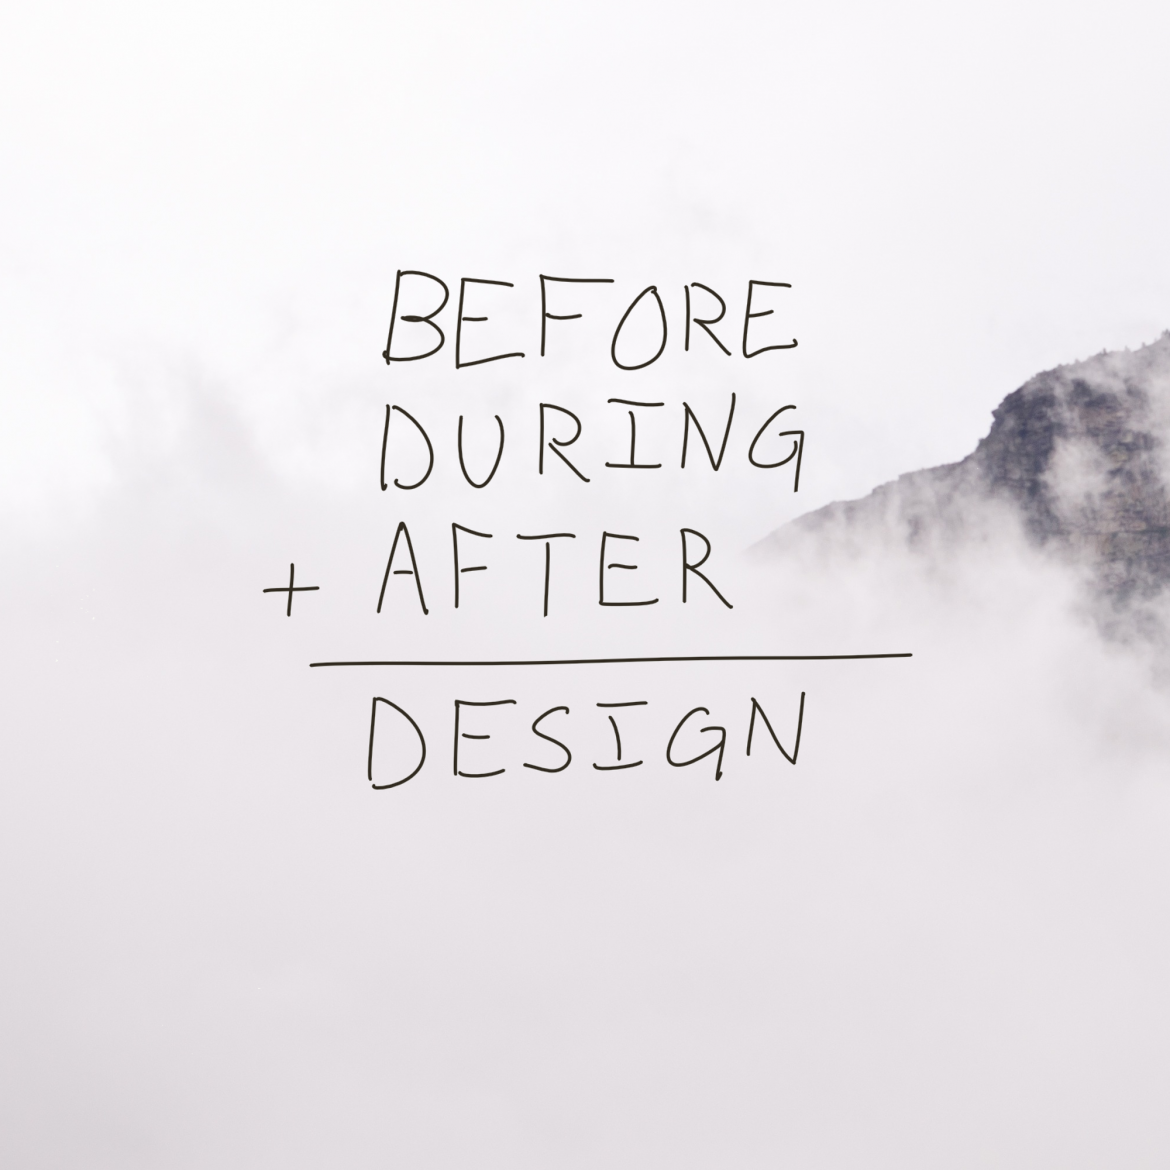 Before + During + After = Design